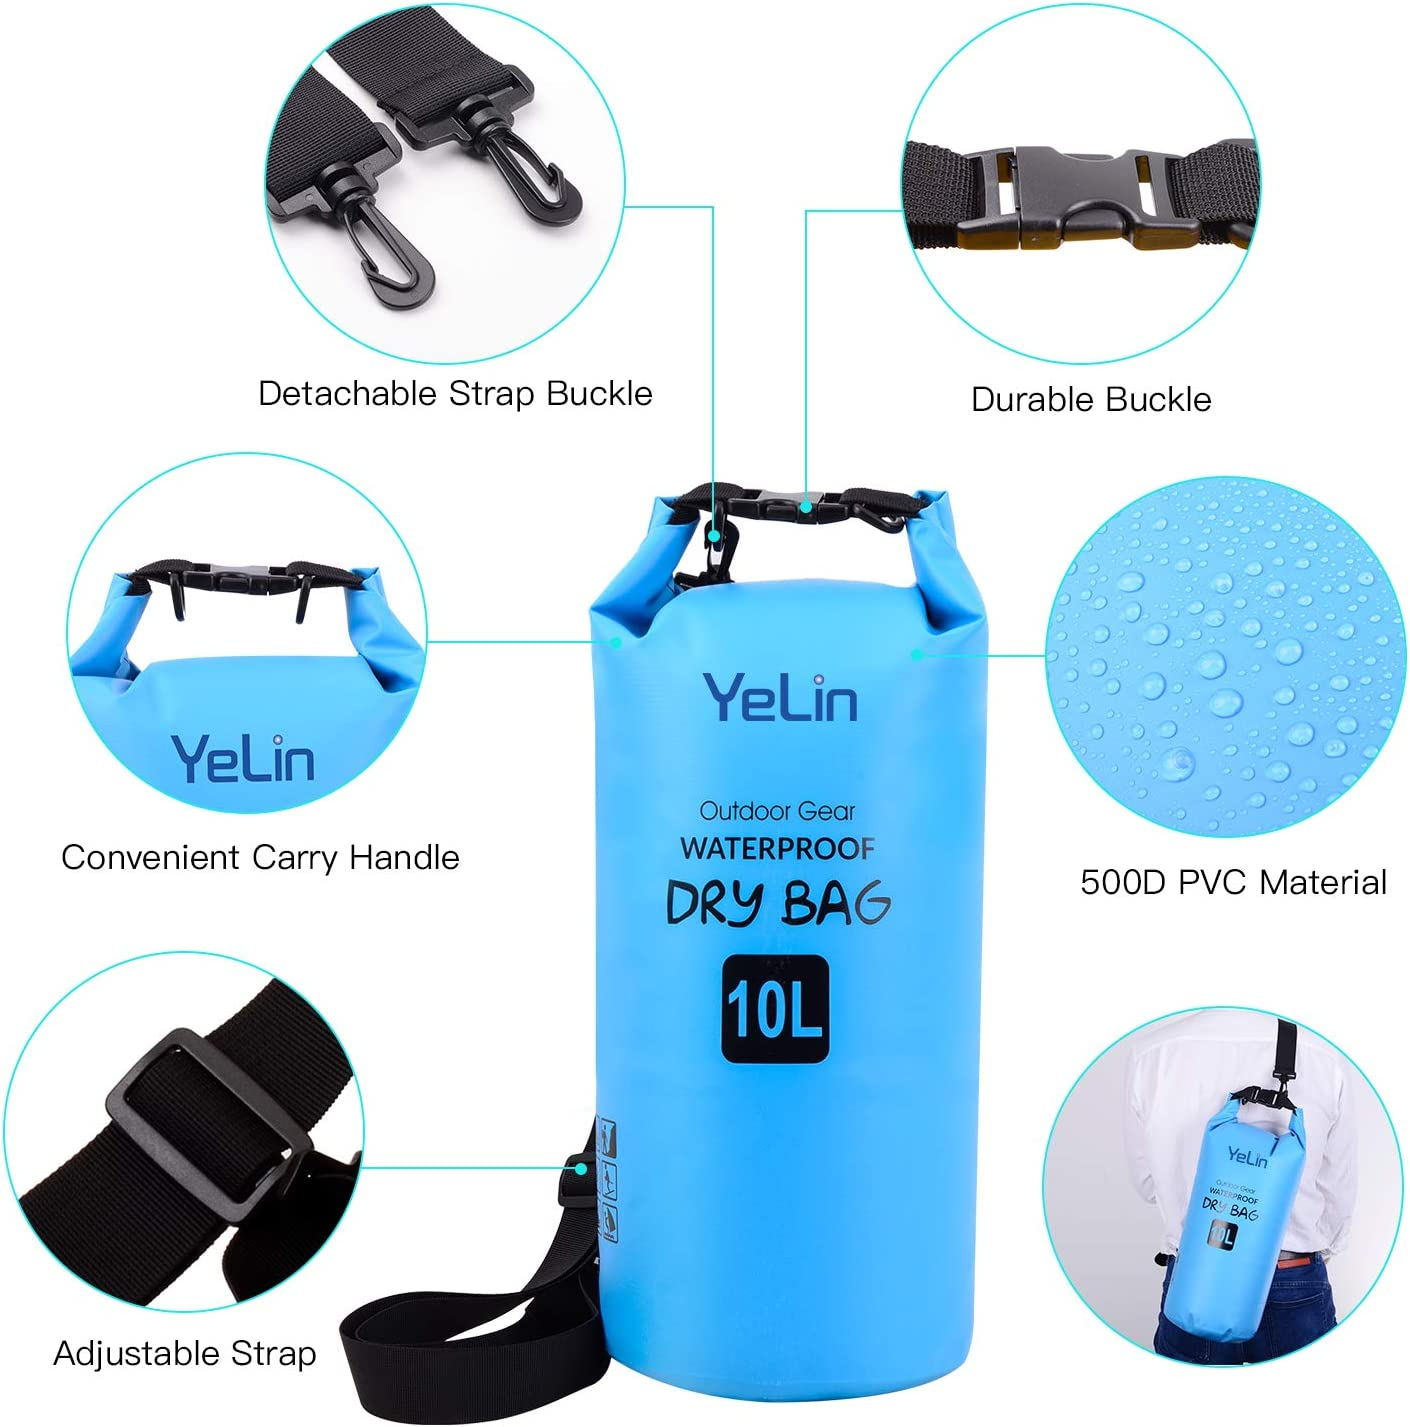 Swimming Kayaking Camping Travel Gifts YELIN Waterproof Dry Bag Floating Marine Dry Pack 10 Liter IPx8 Waterproof Case with Magnetic Strip Seal for Beach Boating